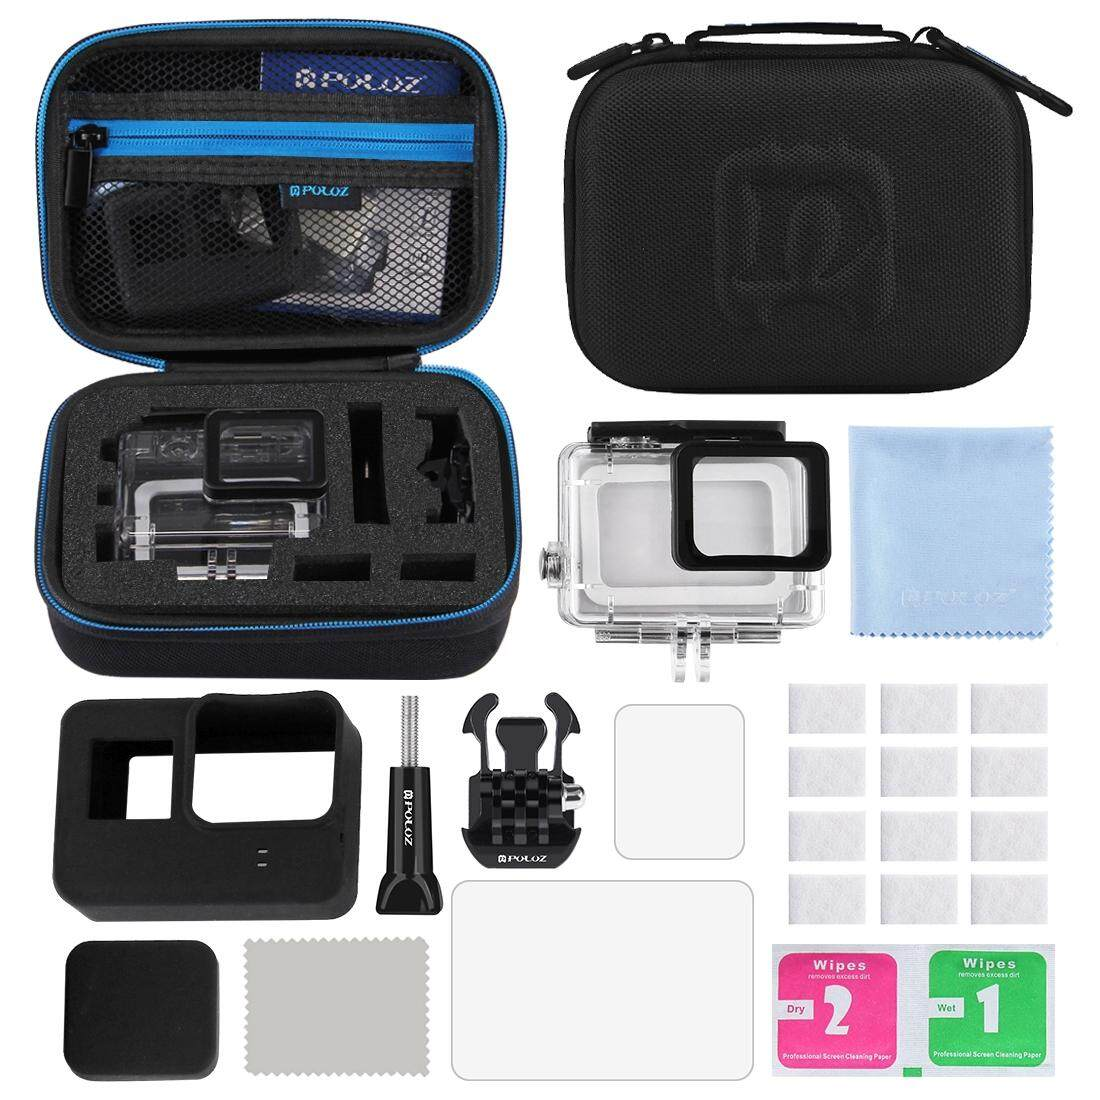 Action Camera Kits for sale - Sports Camera Kits prices, brands & specs in Philippines | Lazada.com.ph